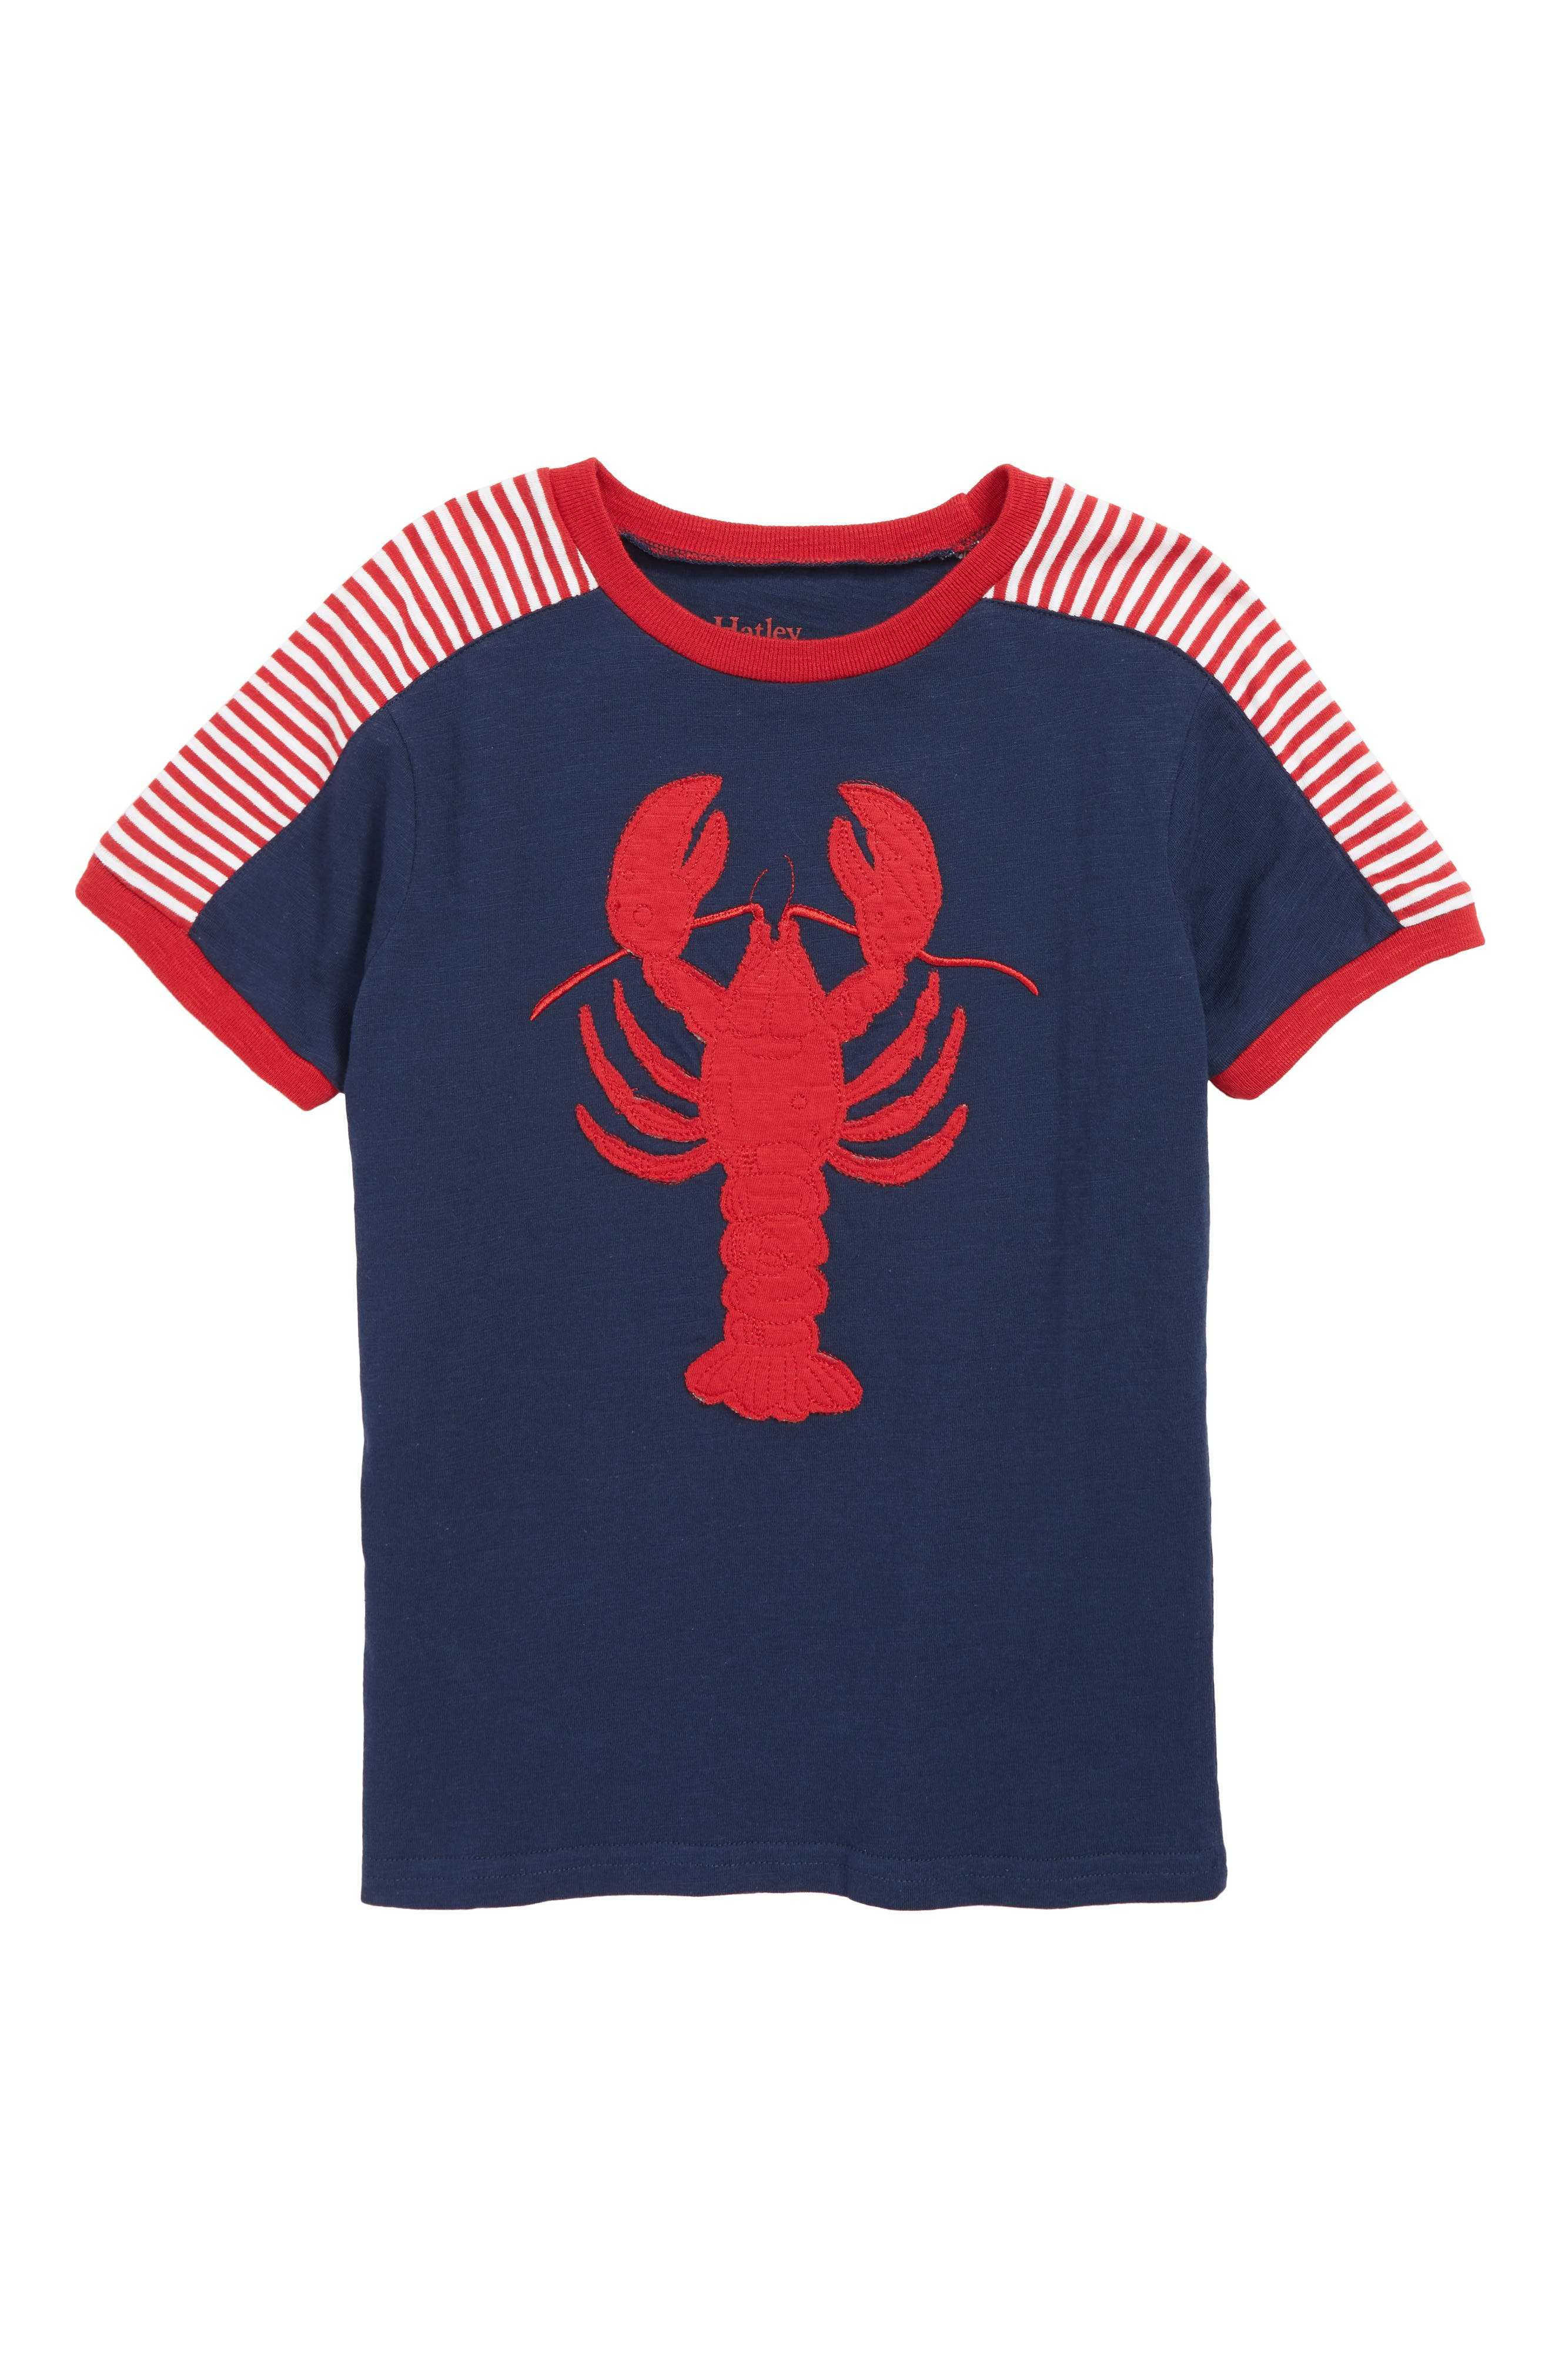 HATLEY, Lobster Patch Shirt, Main thumbnail 1, color, BLUE